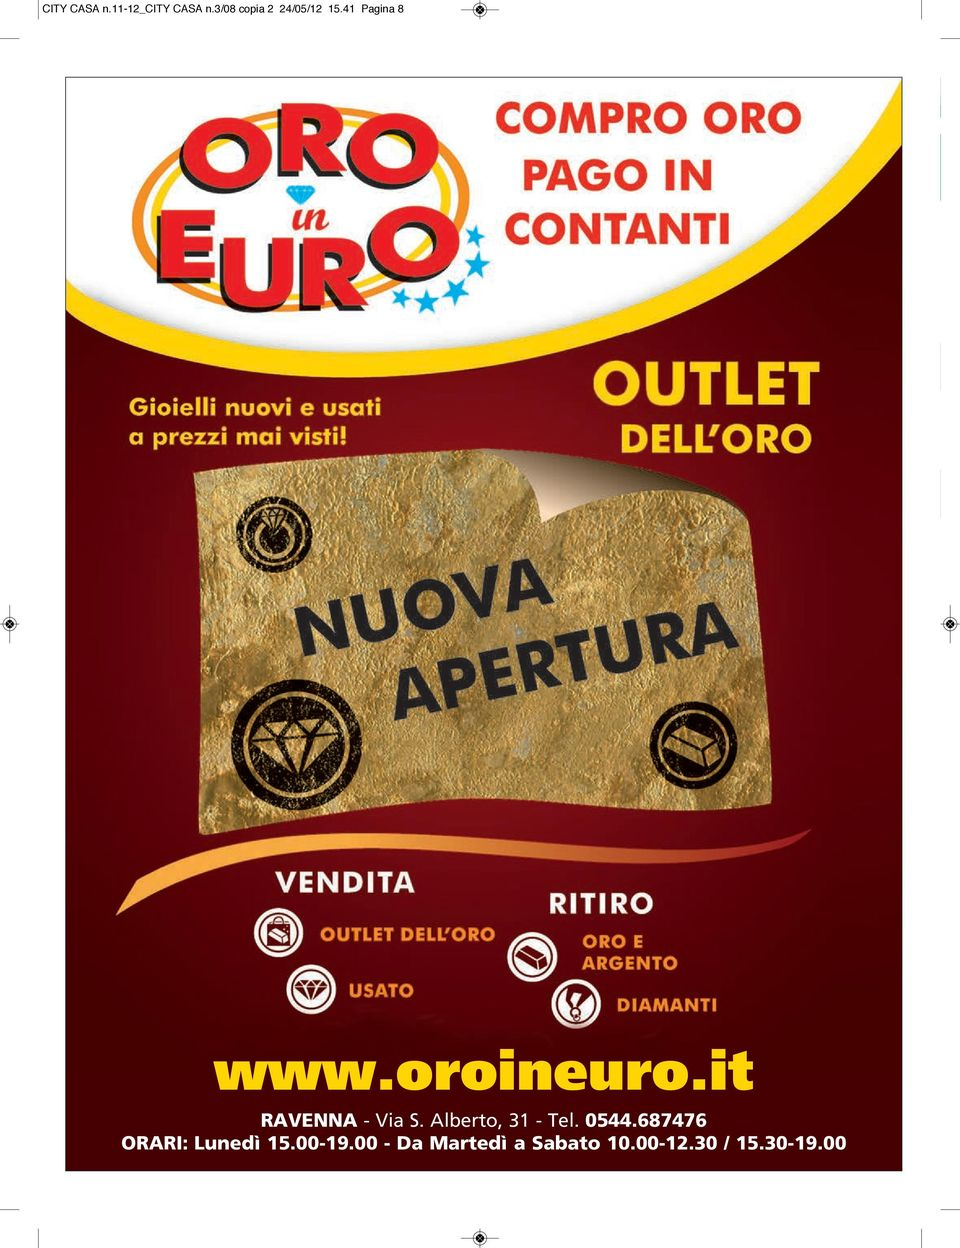 oroineuro.it Via S. Alberto, 31 - Tel. 0544.